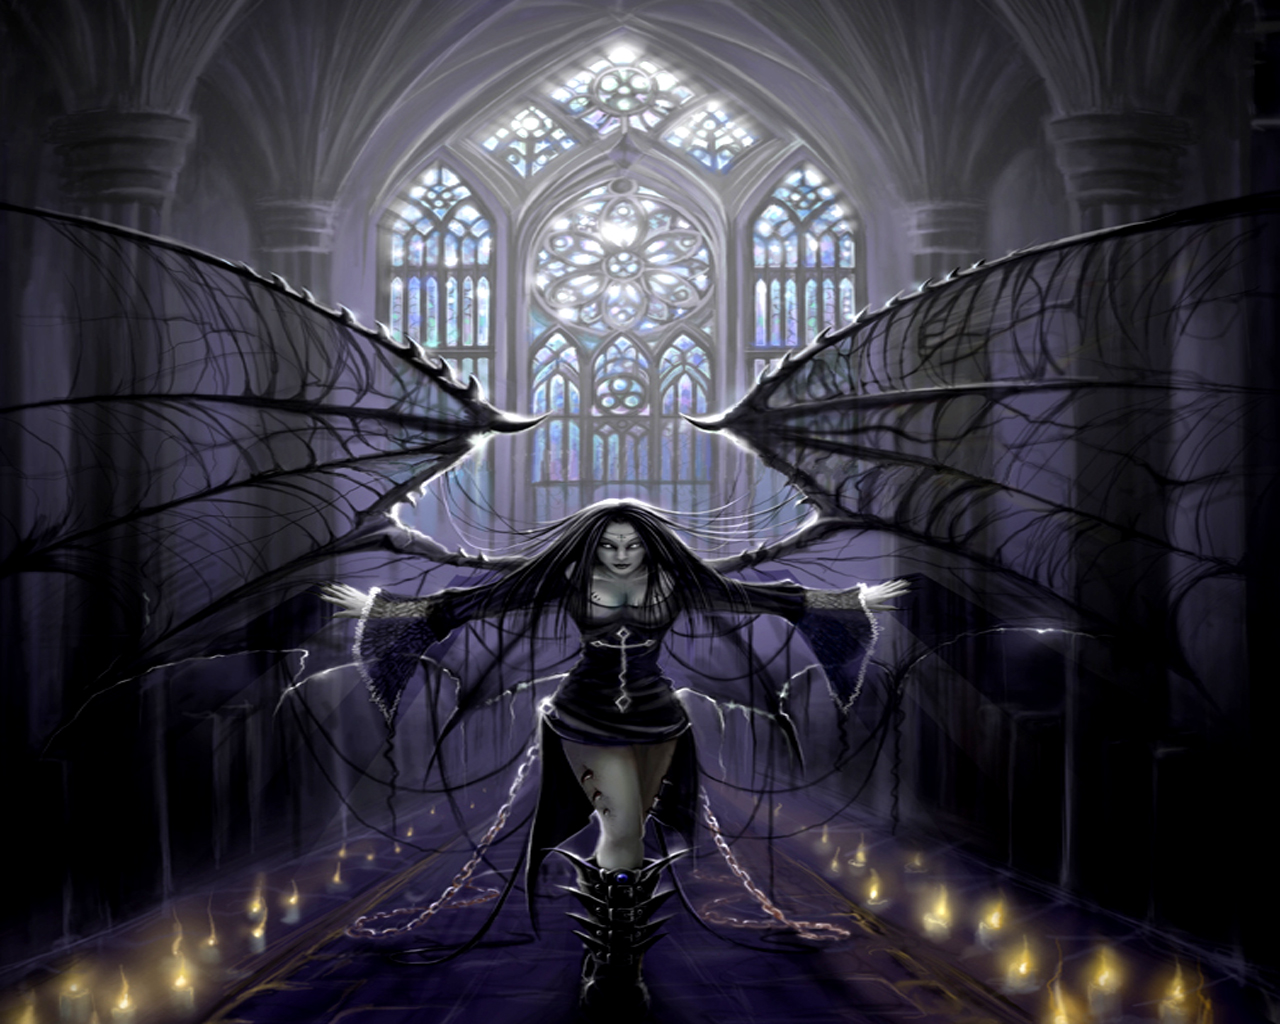 Dark Gothic Pictures of Angels http://goticoymetalsinfonico.blogspot.com/2011/05/angeles.html